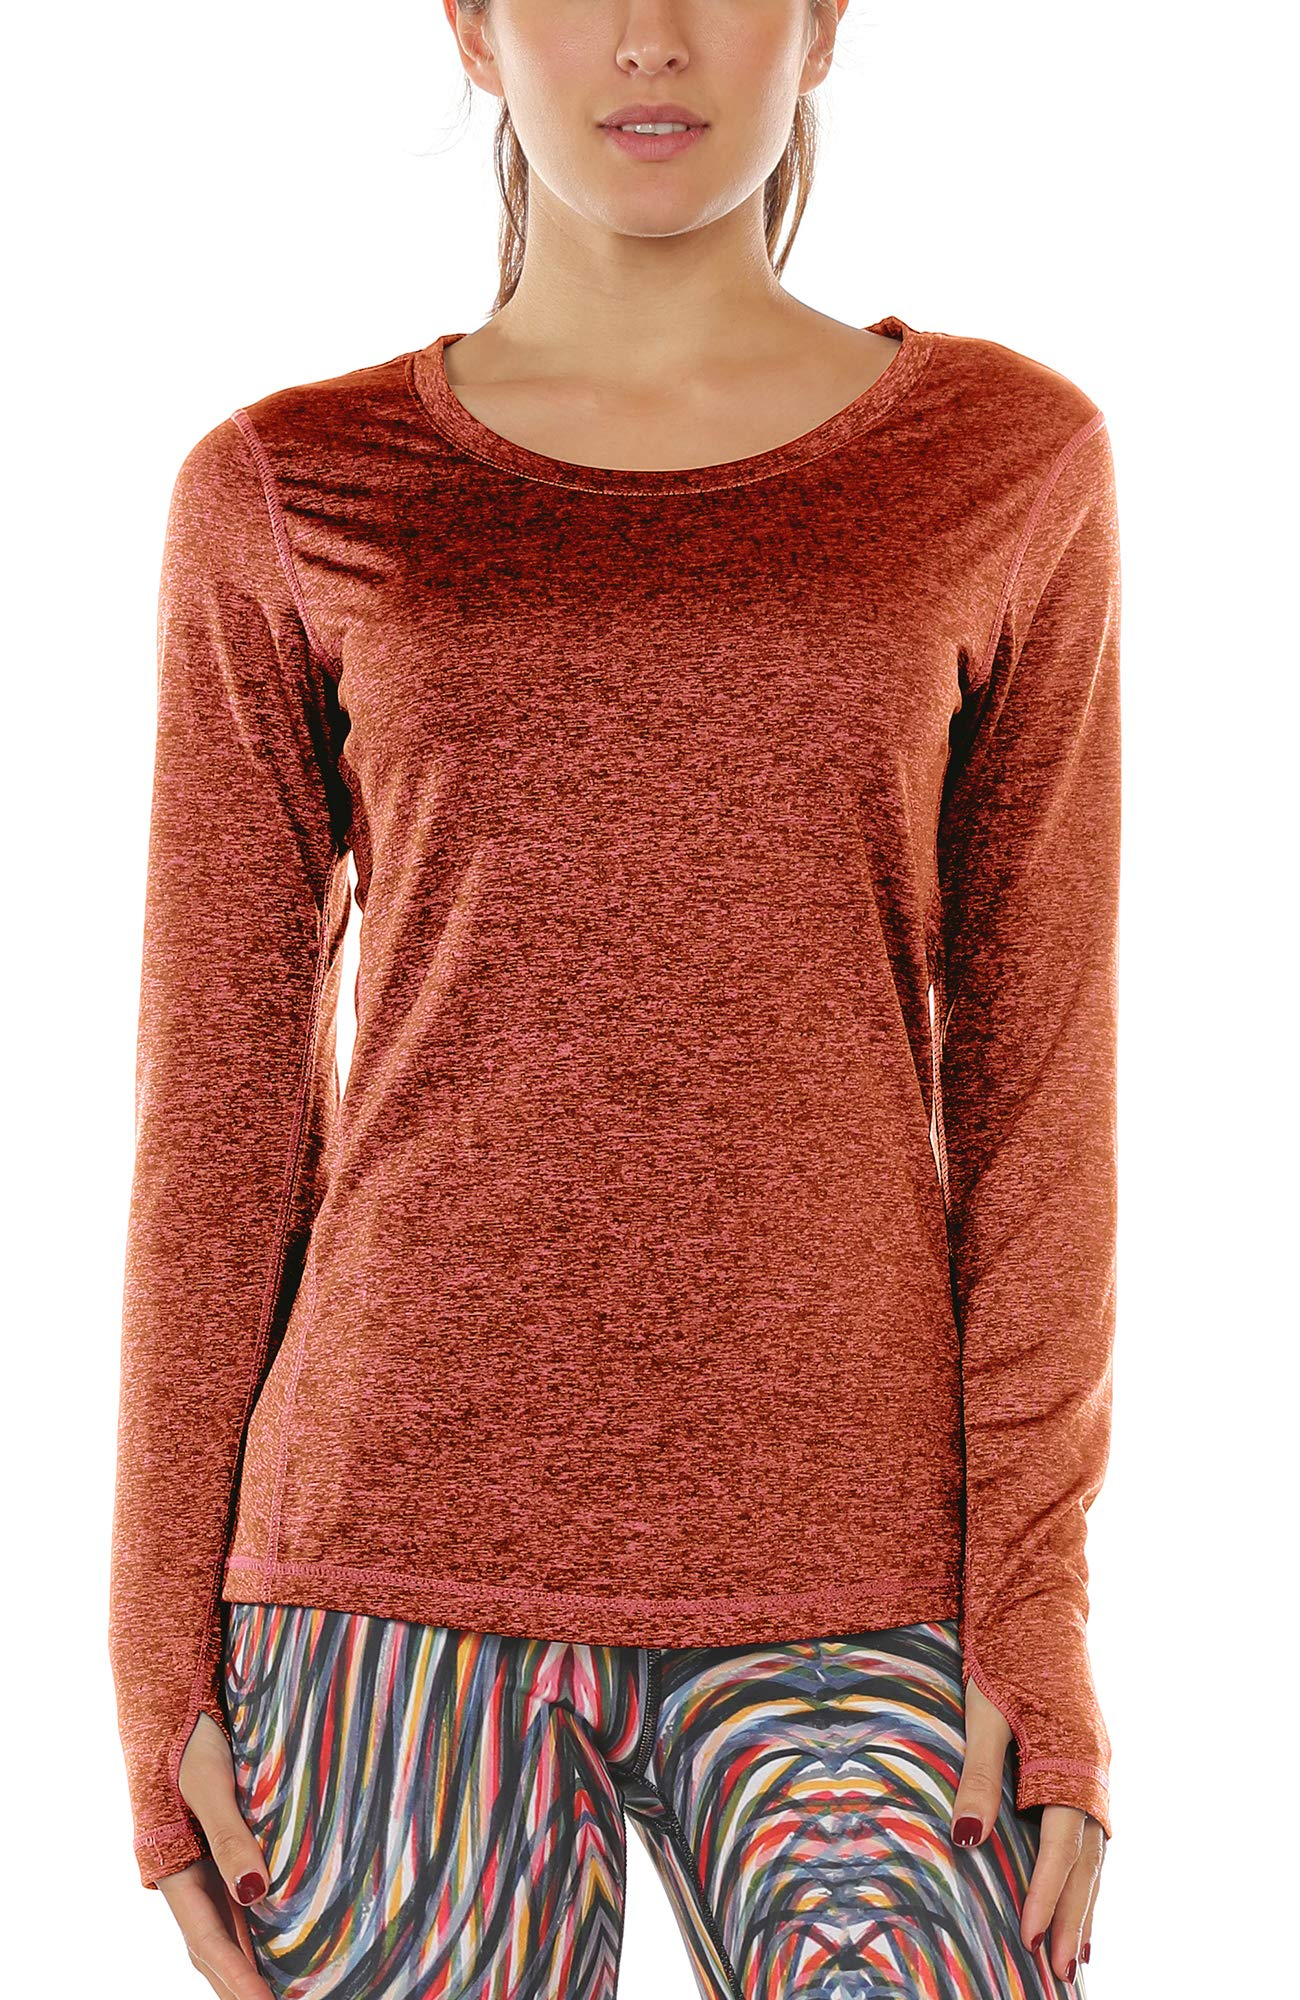 icyzone Women\'s Workout Yoga Long Sleeve T-Shirts With Thumb Holes (Burnt Ochre, M)